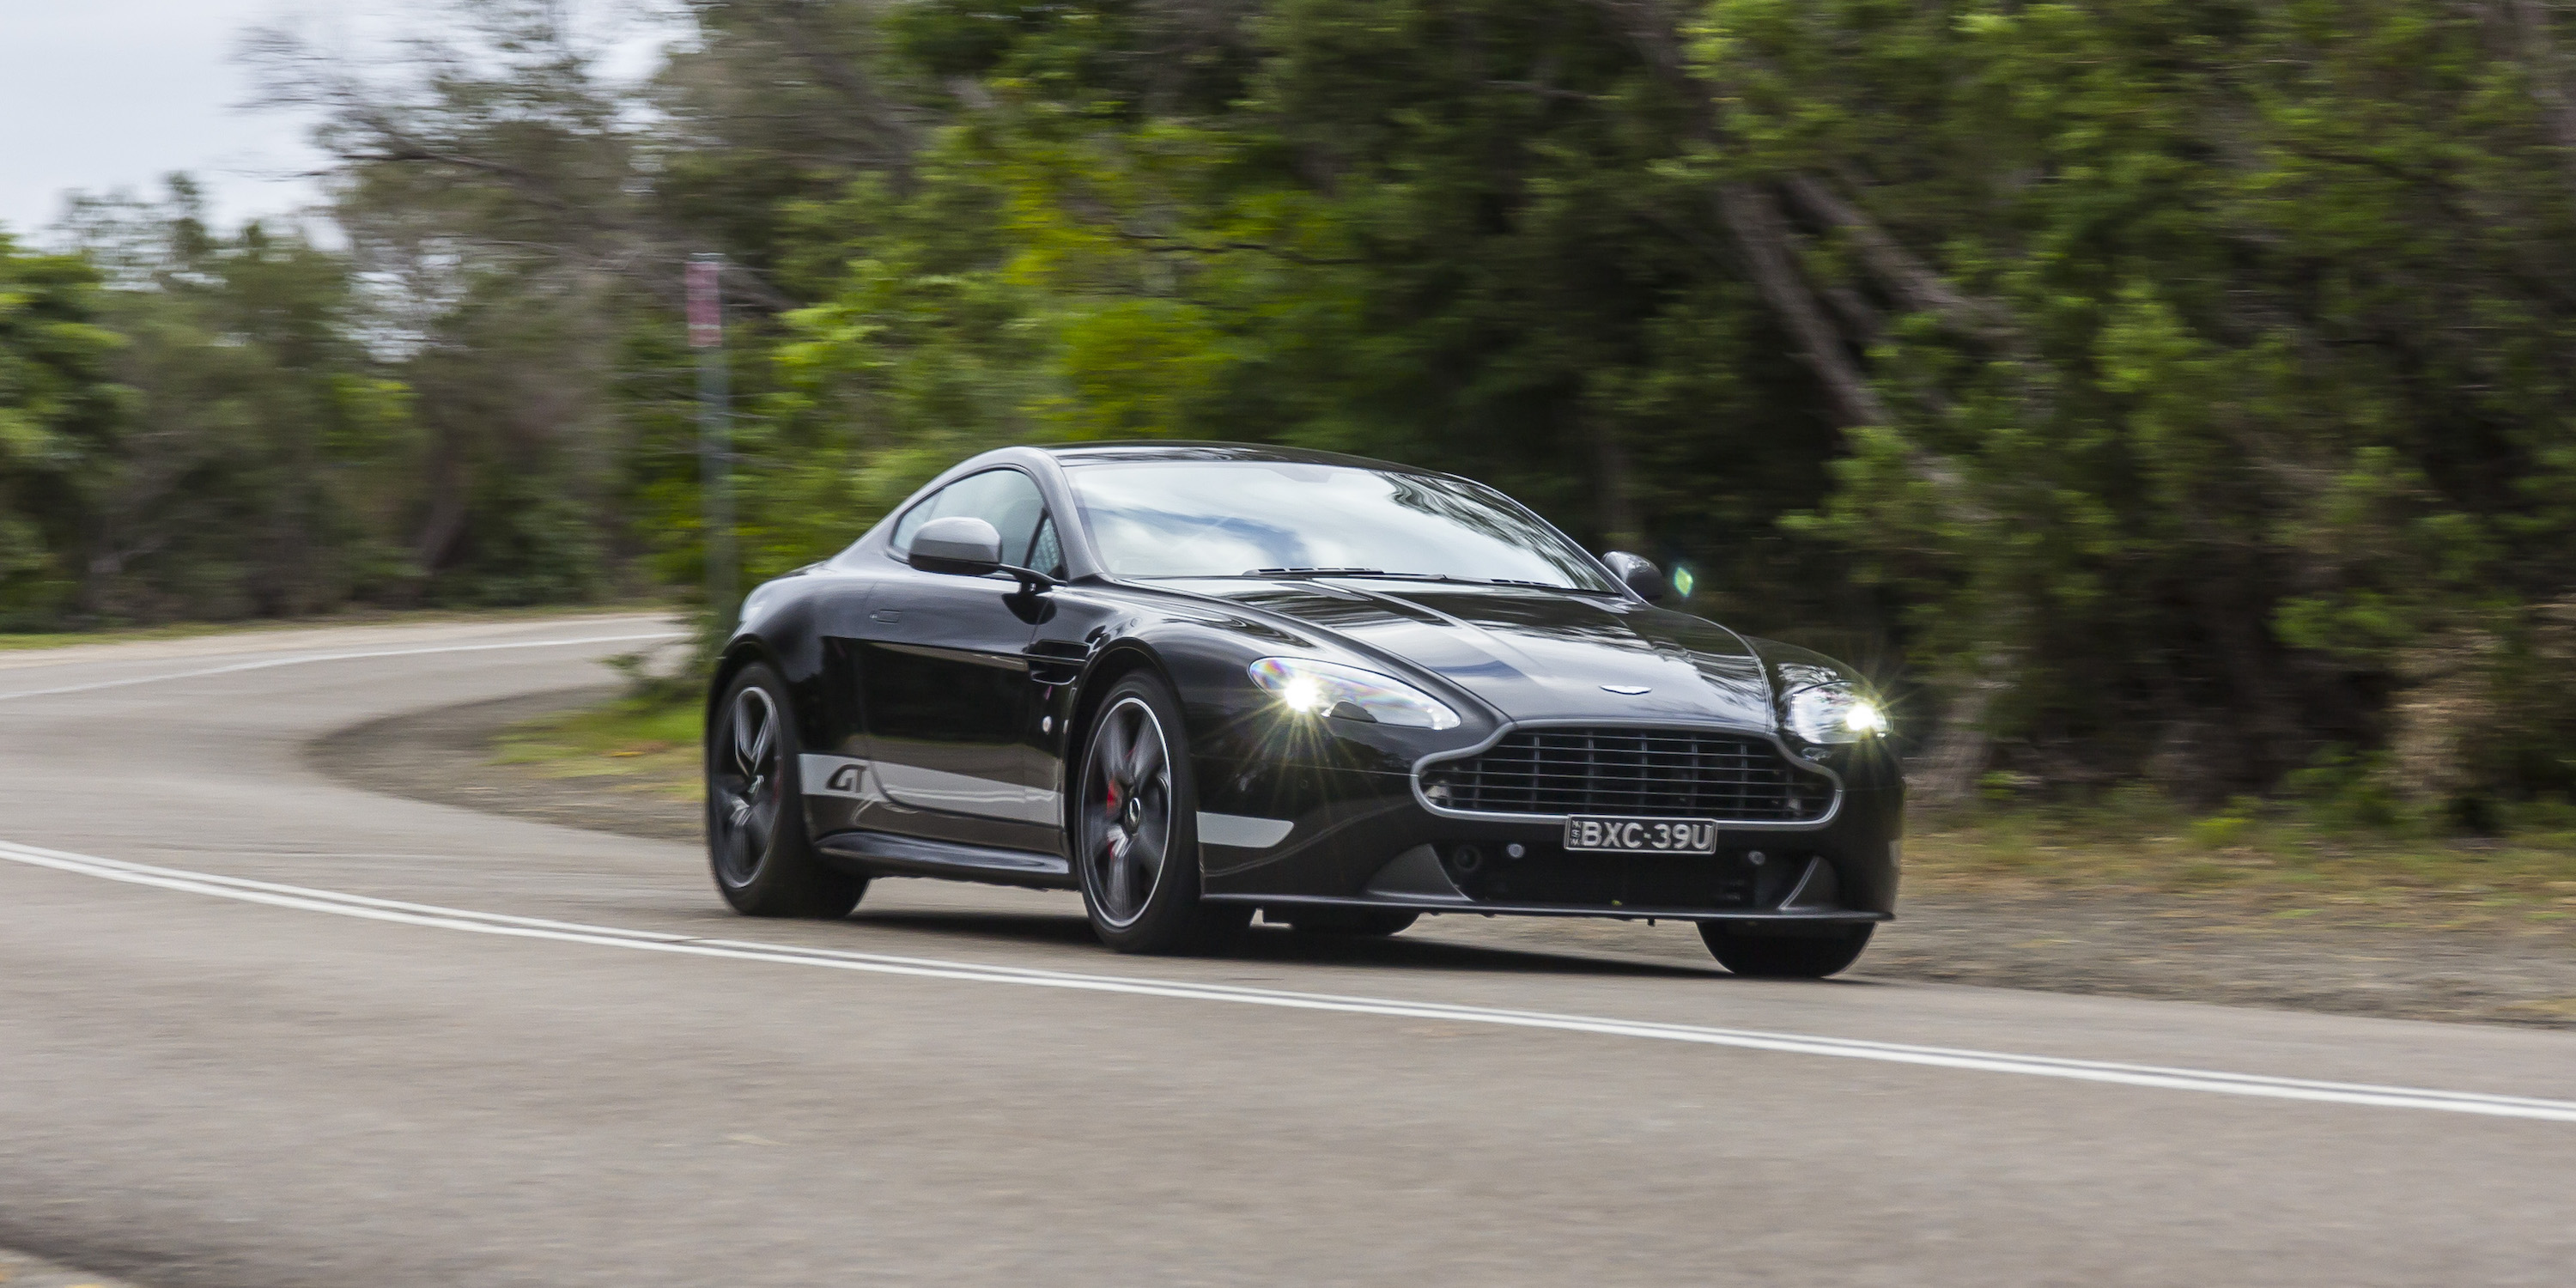 2016 Aston Martin Vantage Gt Performance Test (View 8 of 25)